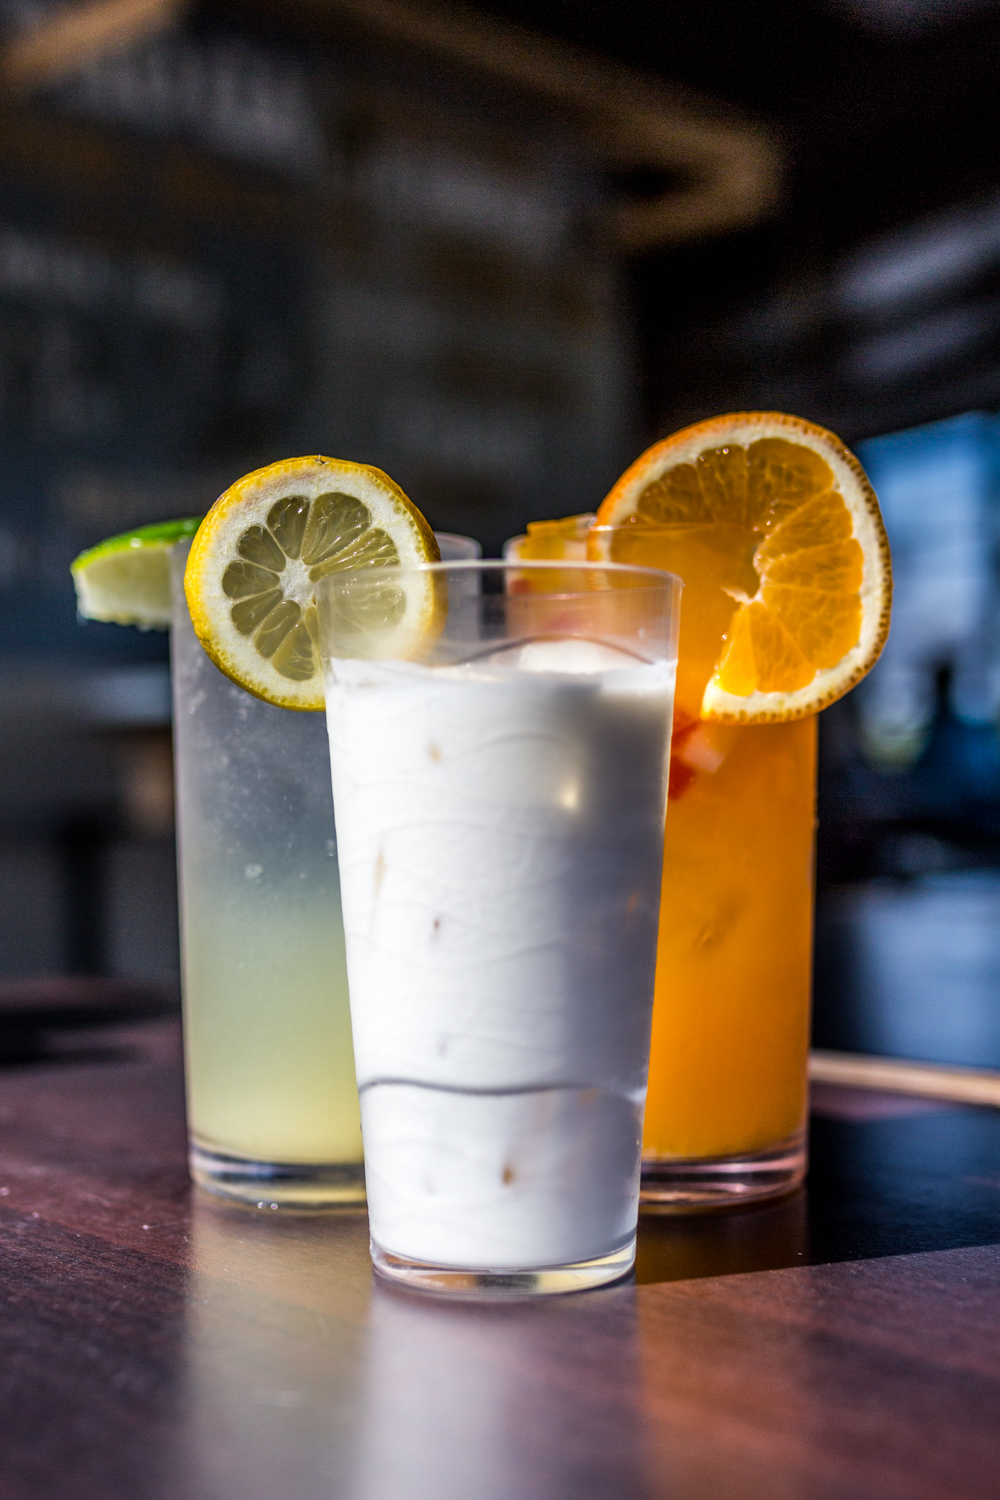 Iced yogurt, fresh lime soda, and fresh orange juice / Image: Catherine Viox{ }// Published: 9.28.19